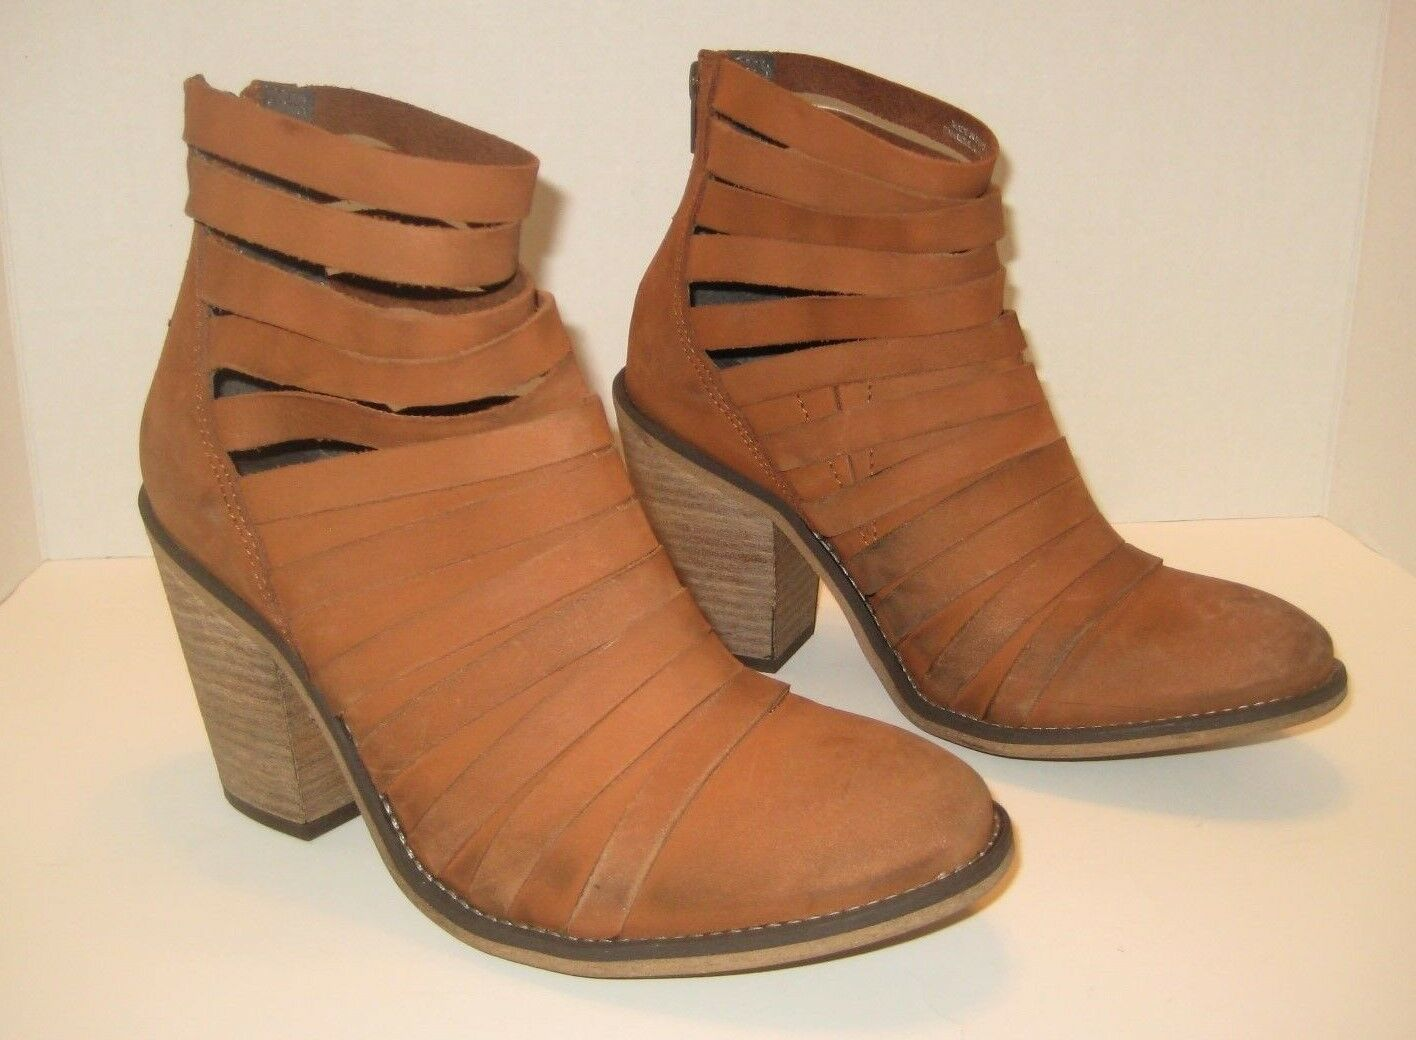 FREE PEOPLE HYBRID STRAPPY LEATHER BOOTIE BOOT TERRACOTTA LEATHER SIZE 7US  37EU